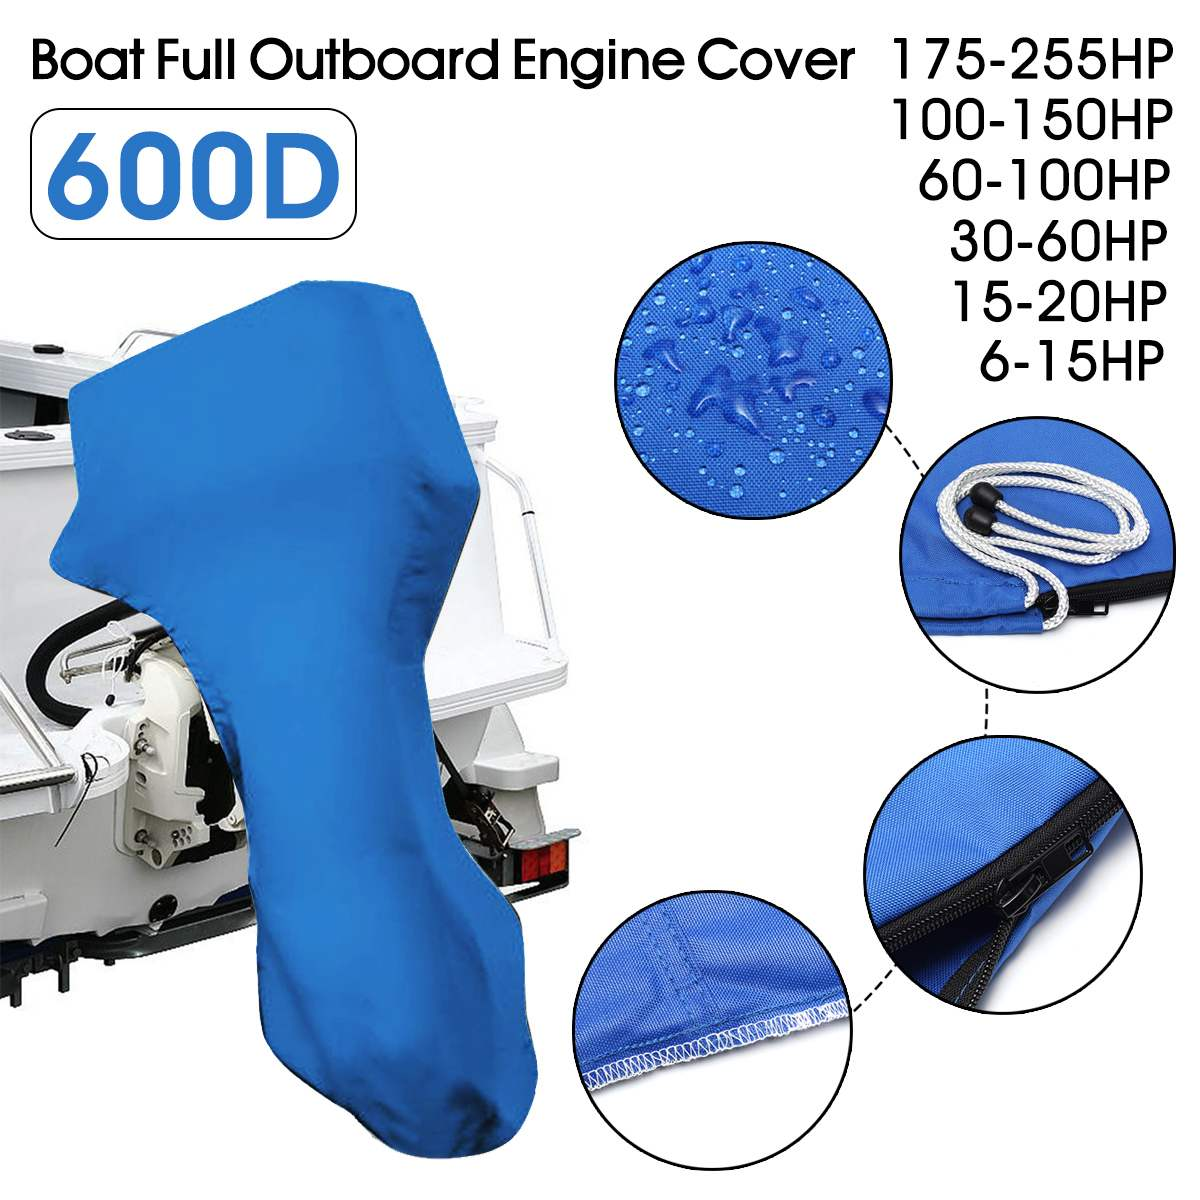 600D Boat Full Outboard Engine Cover Blue Engine Motor Covers Protector For 6-225HP Waterproof